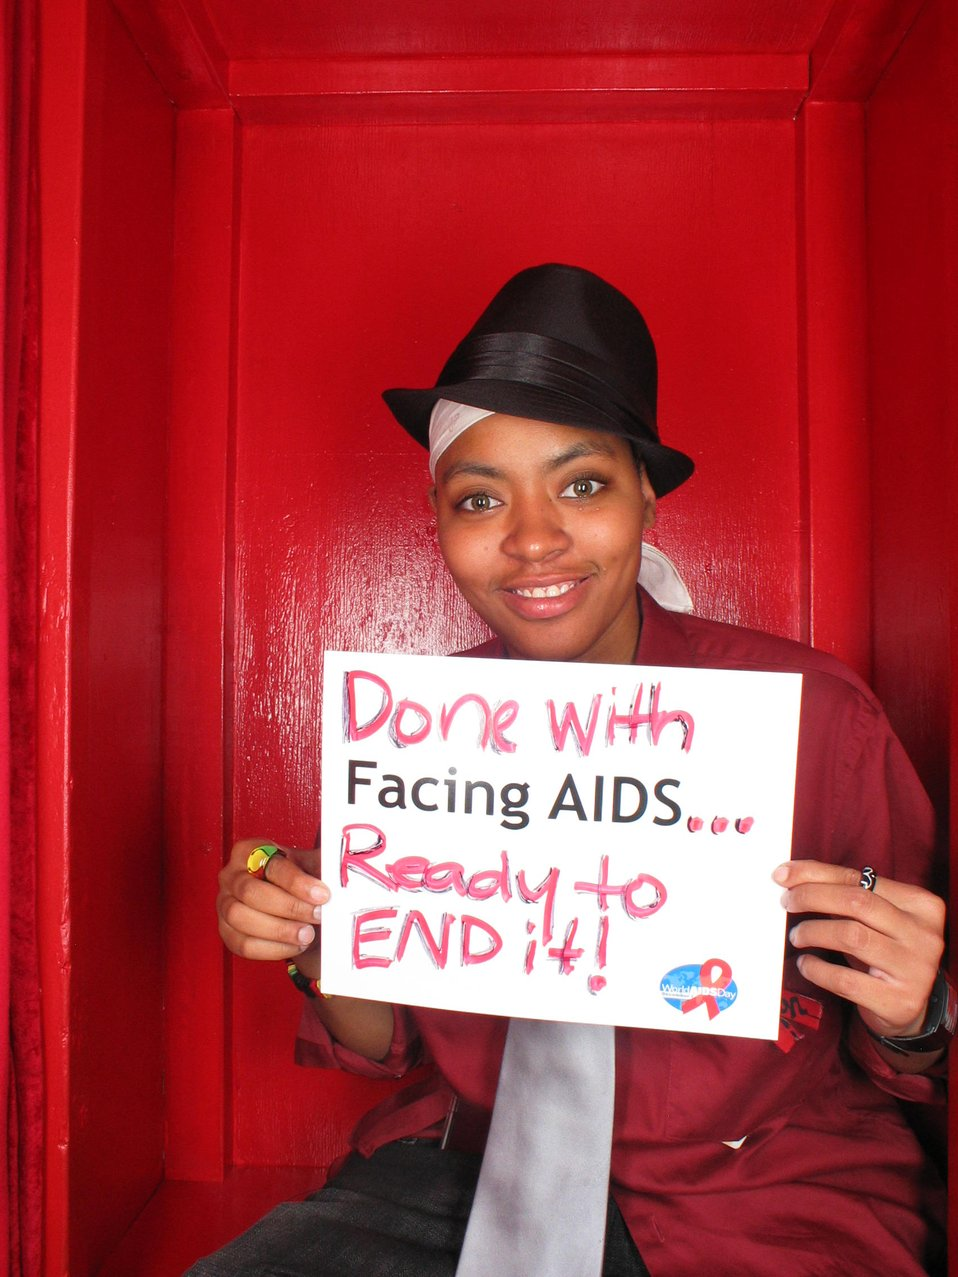 Done with Facing AIDS...ready to end it!